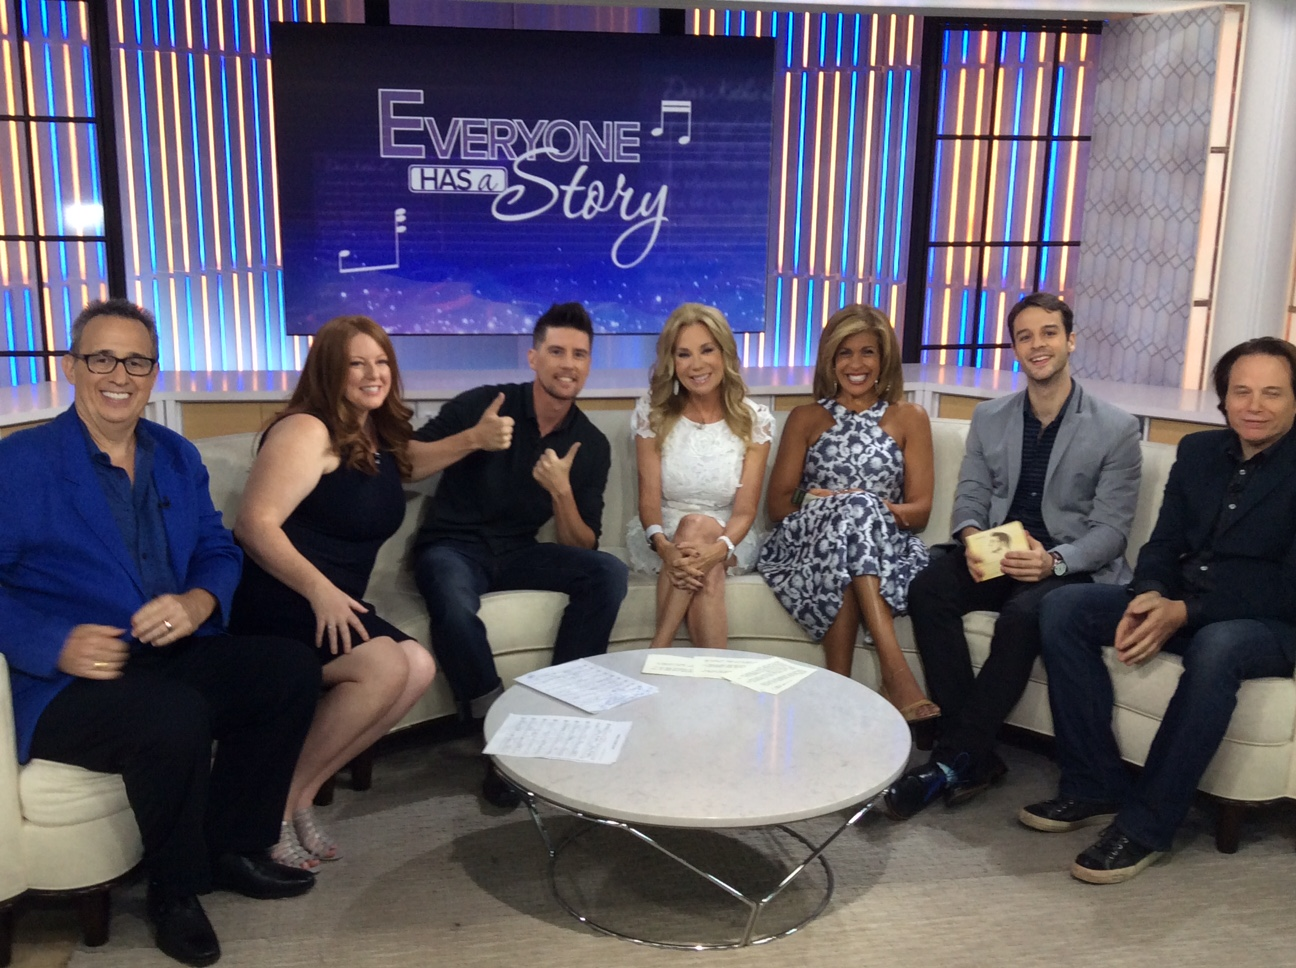 Pete and Karin on the Today Show!